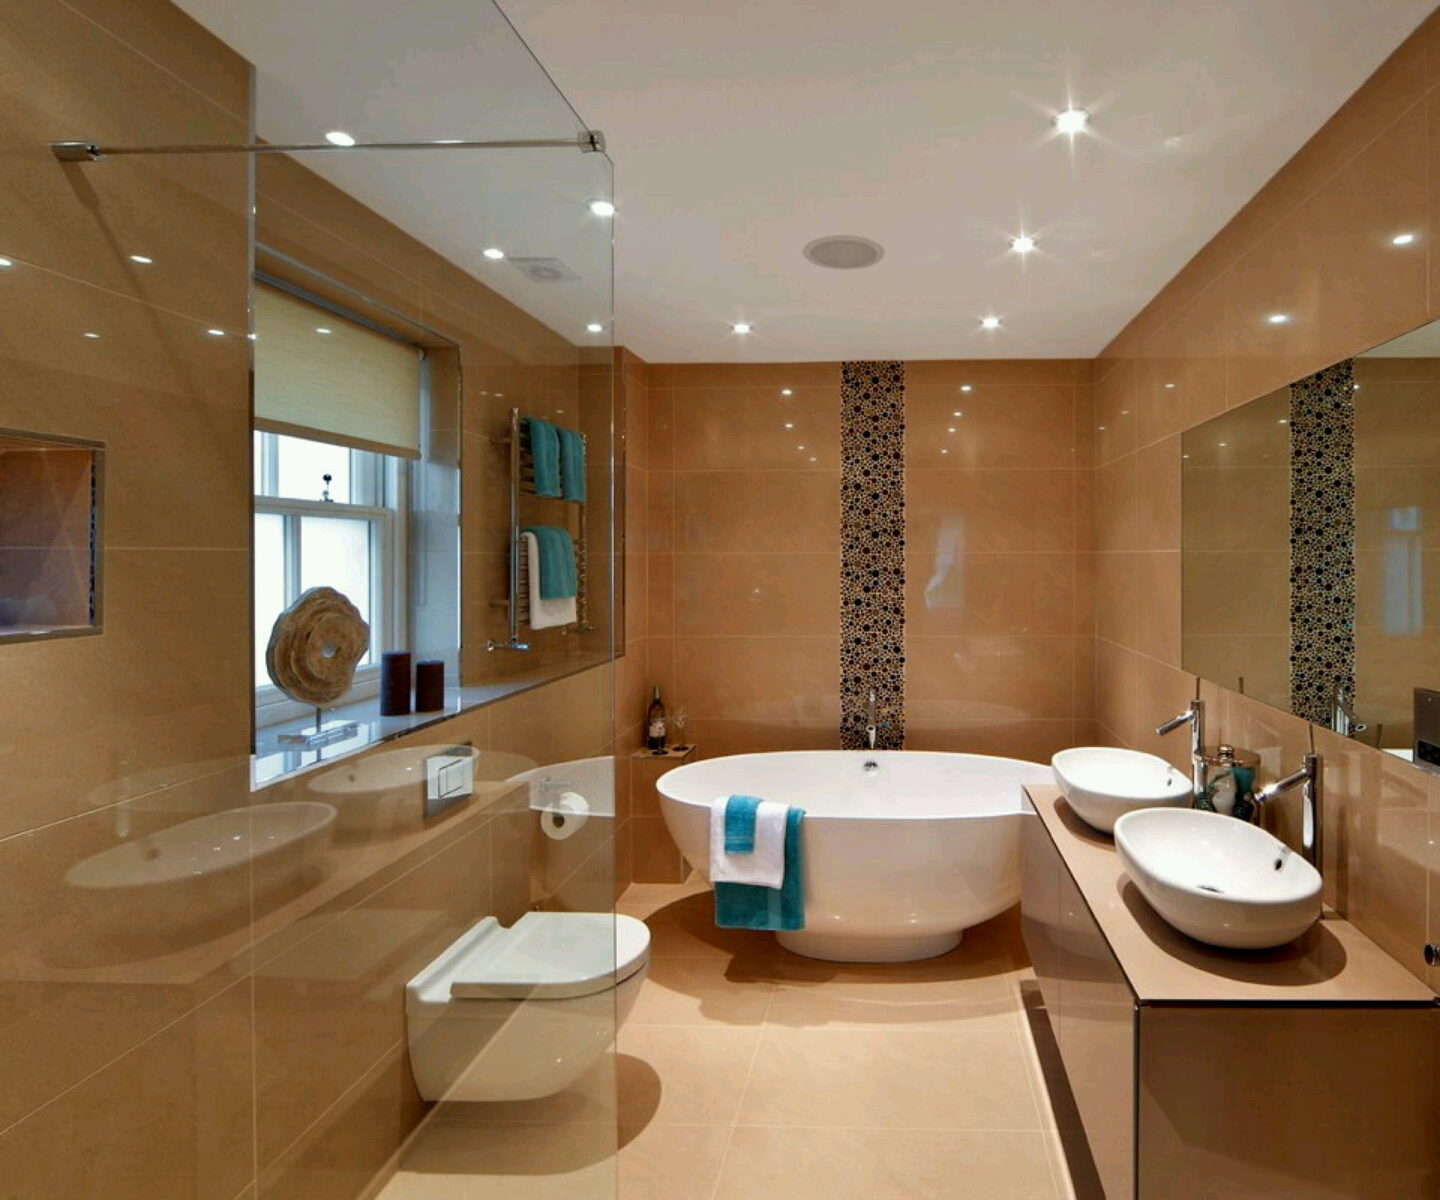 25 Luxurious Bathroom Design Ideas To Copy Right Now (With ...